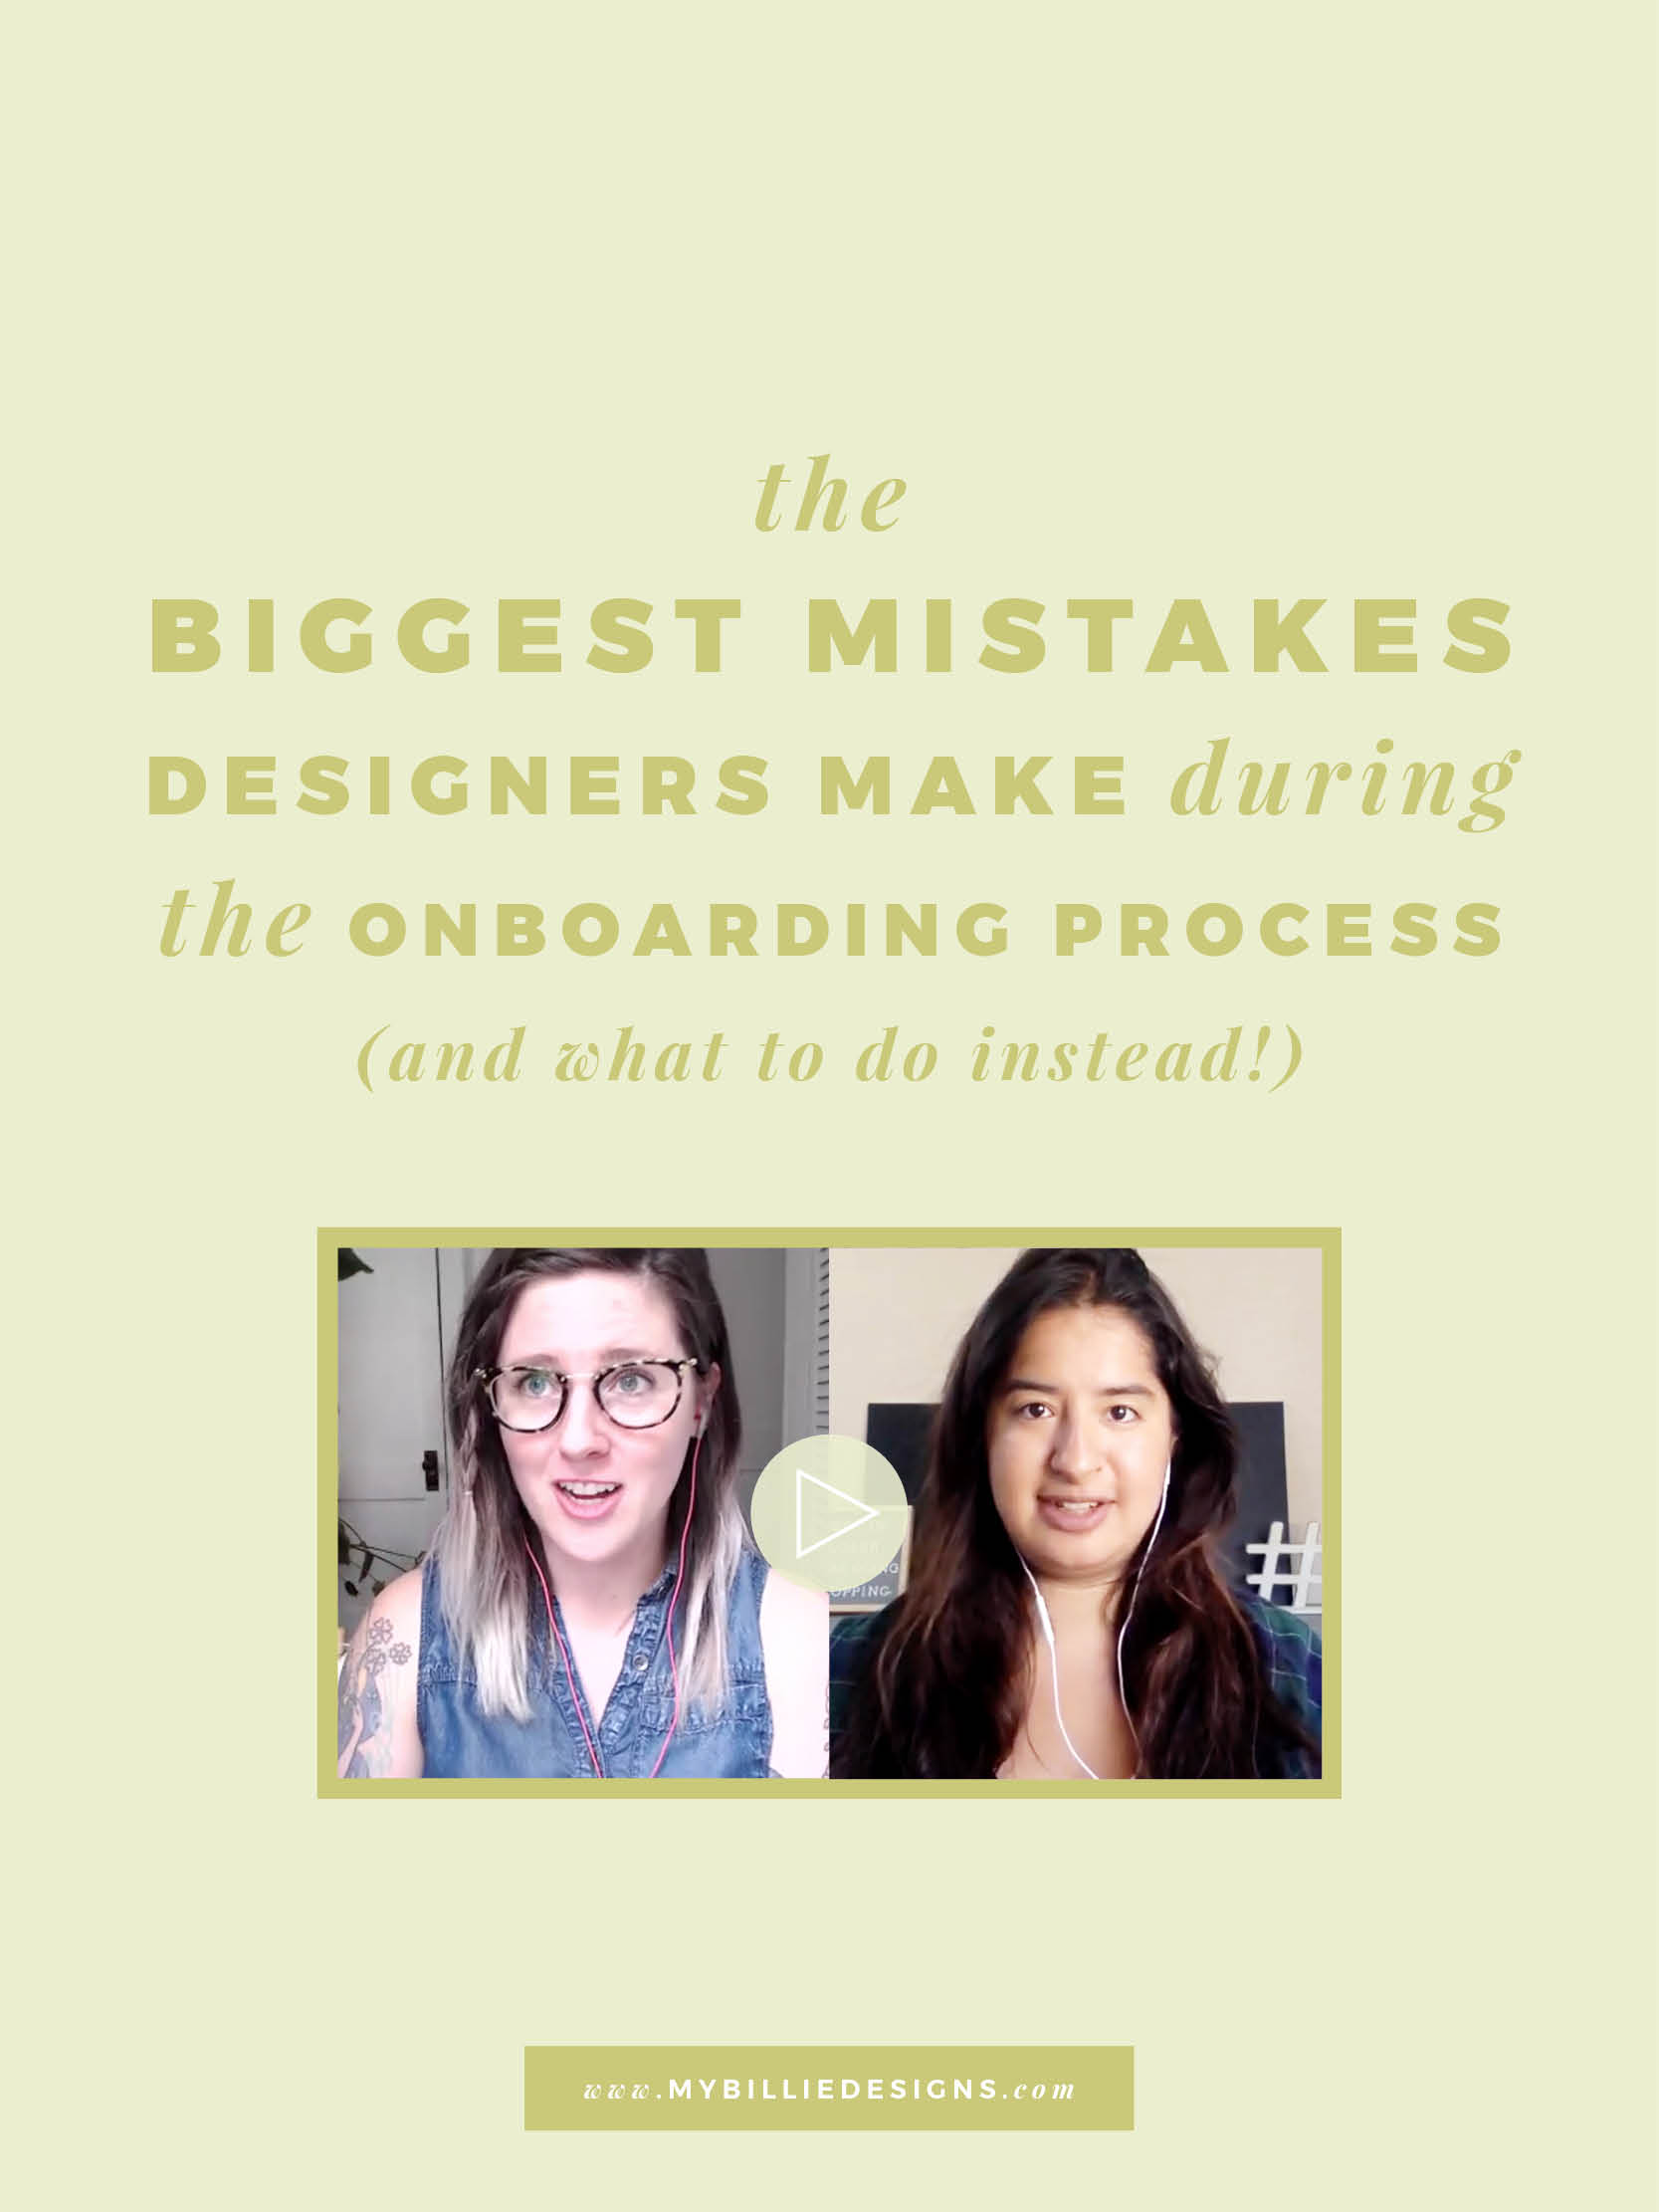 The Biggest Mistakes Designers Make During the Onboarding Process And What To Do Instead →